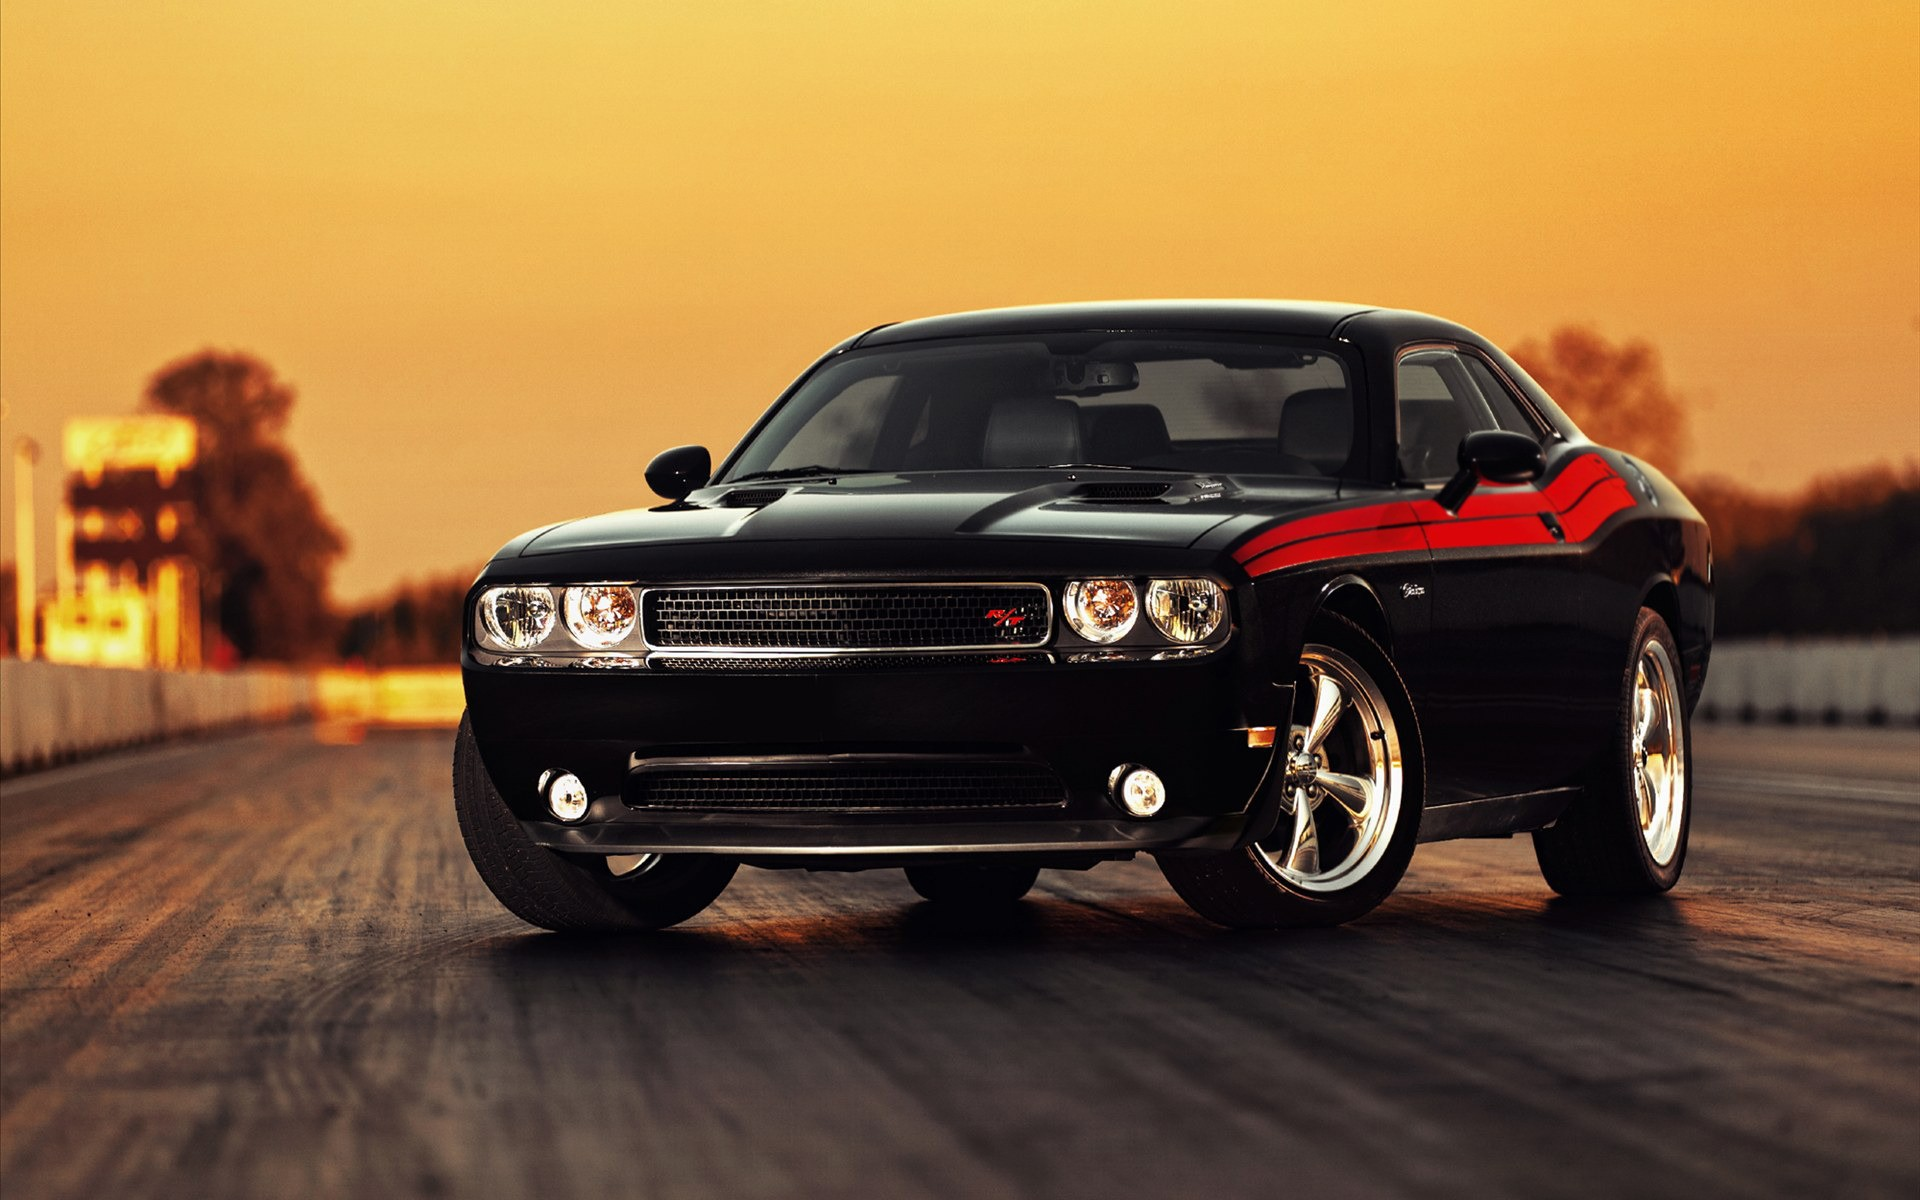 Photo Dodge Challenger car, black with red stripes